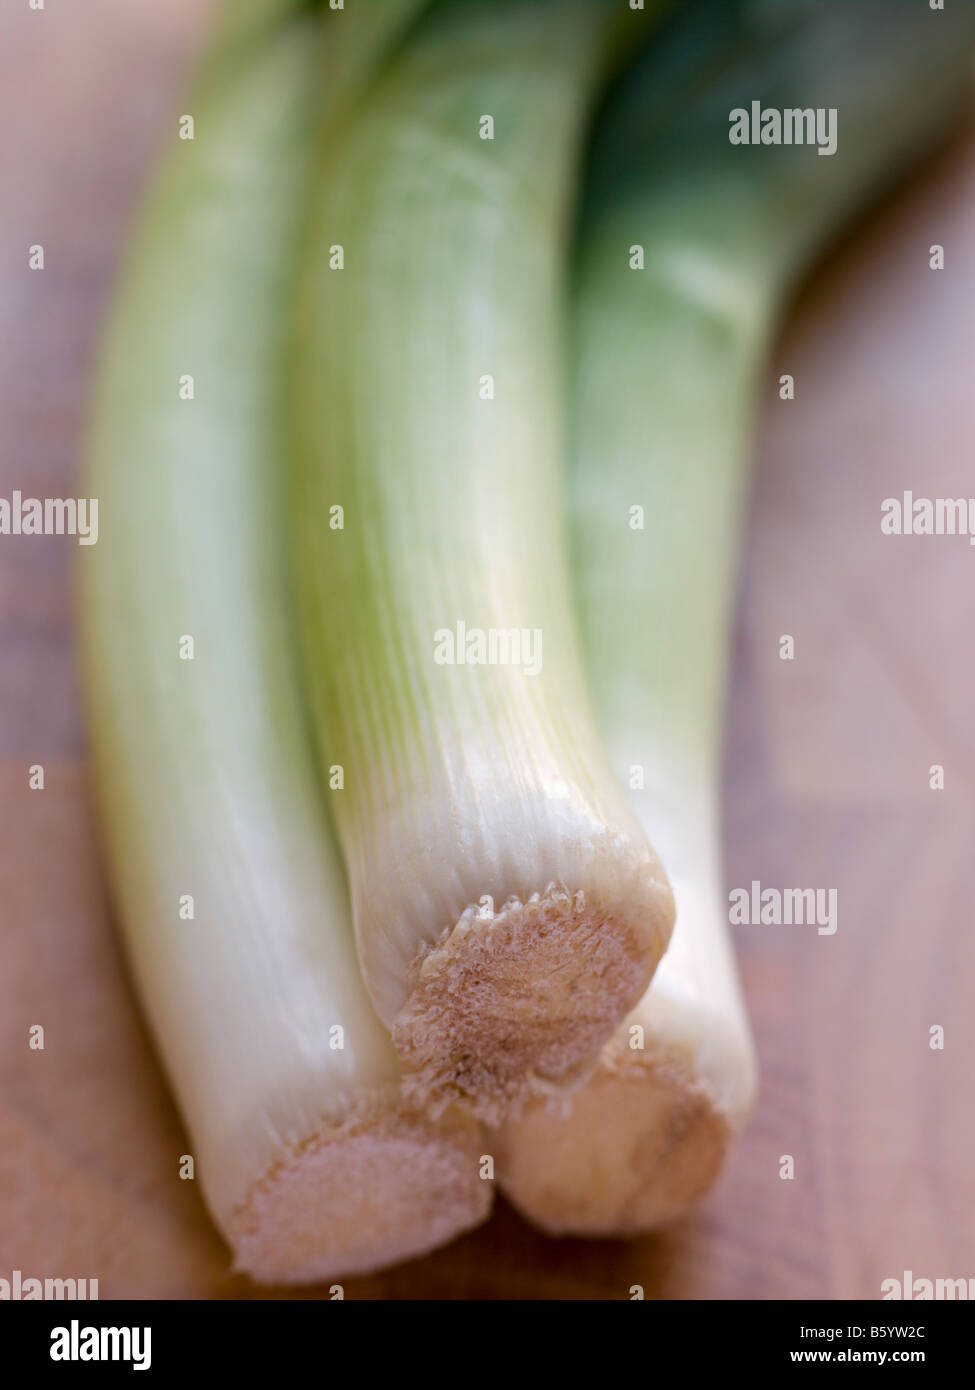 Group Of Leeks - Stock Image